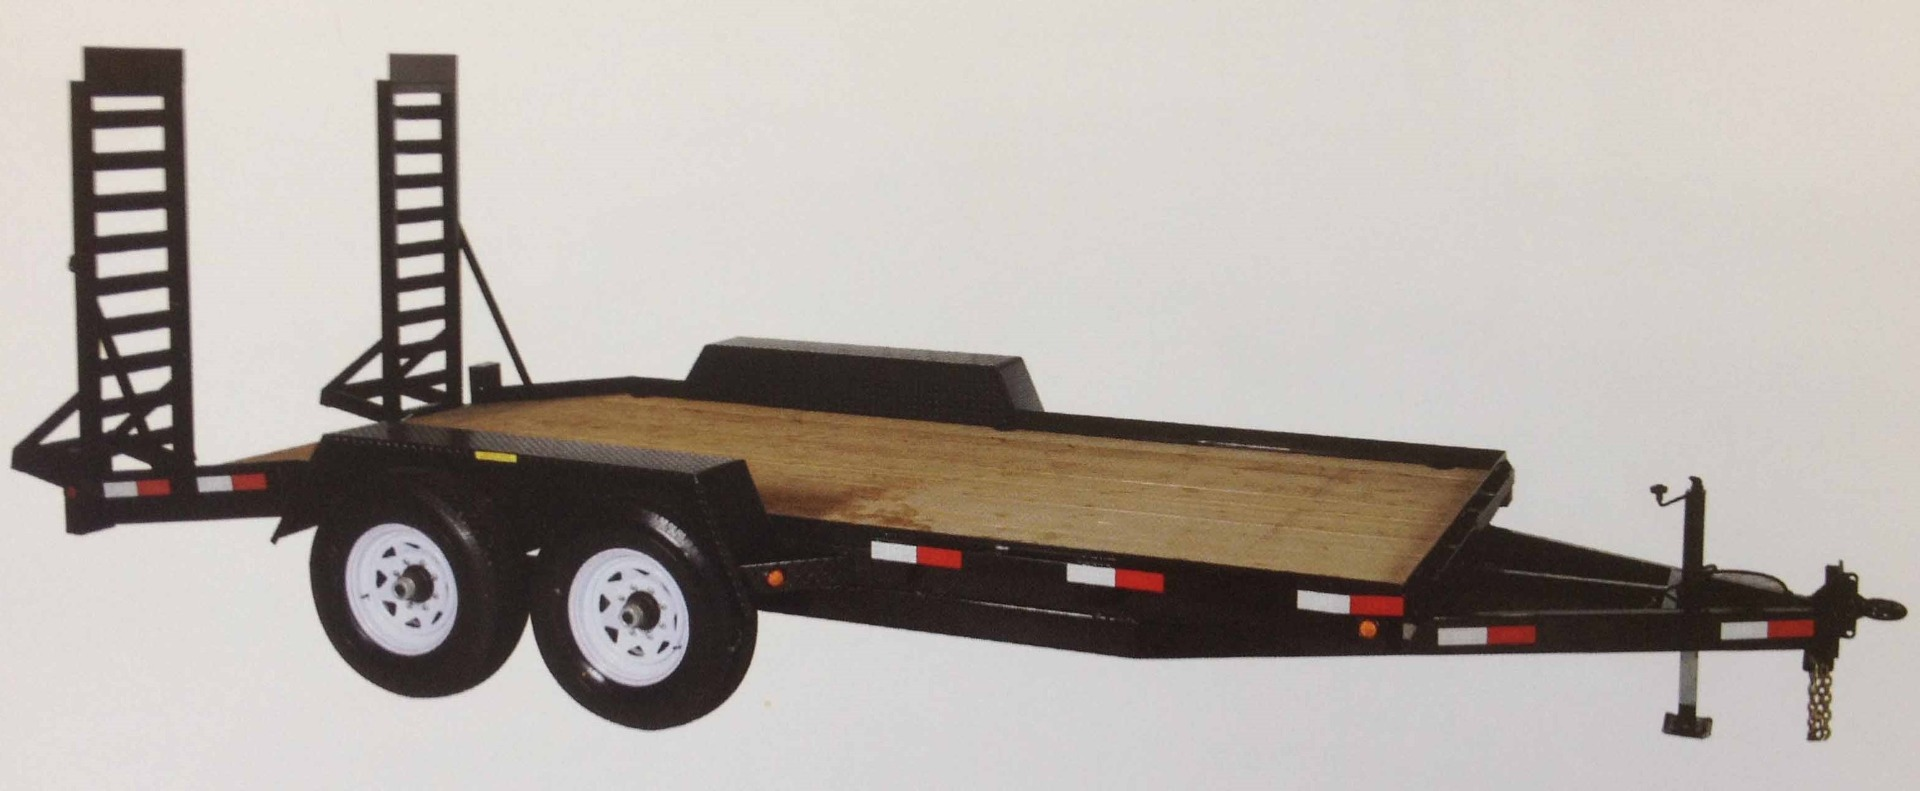 "JDJ Equipment Float with Fenders Tandem Trailer (6'8"" W x 16' L) Model BC 12000-16"